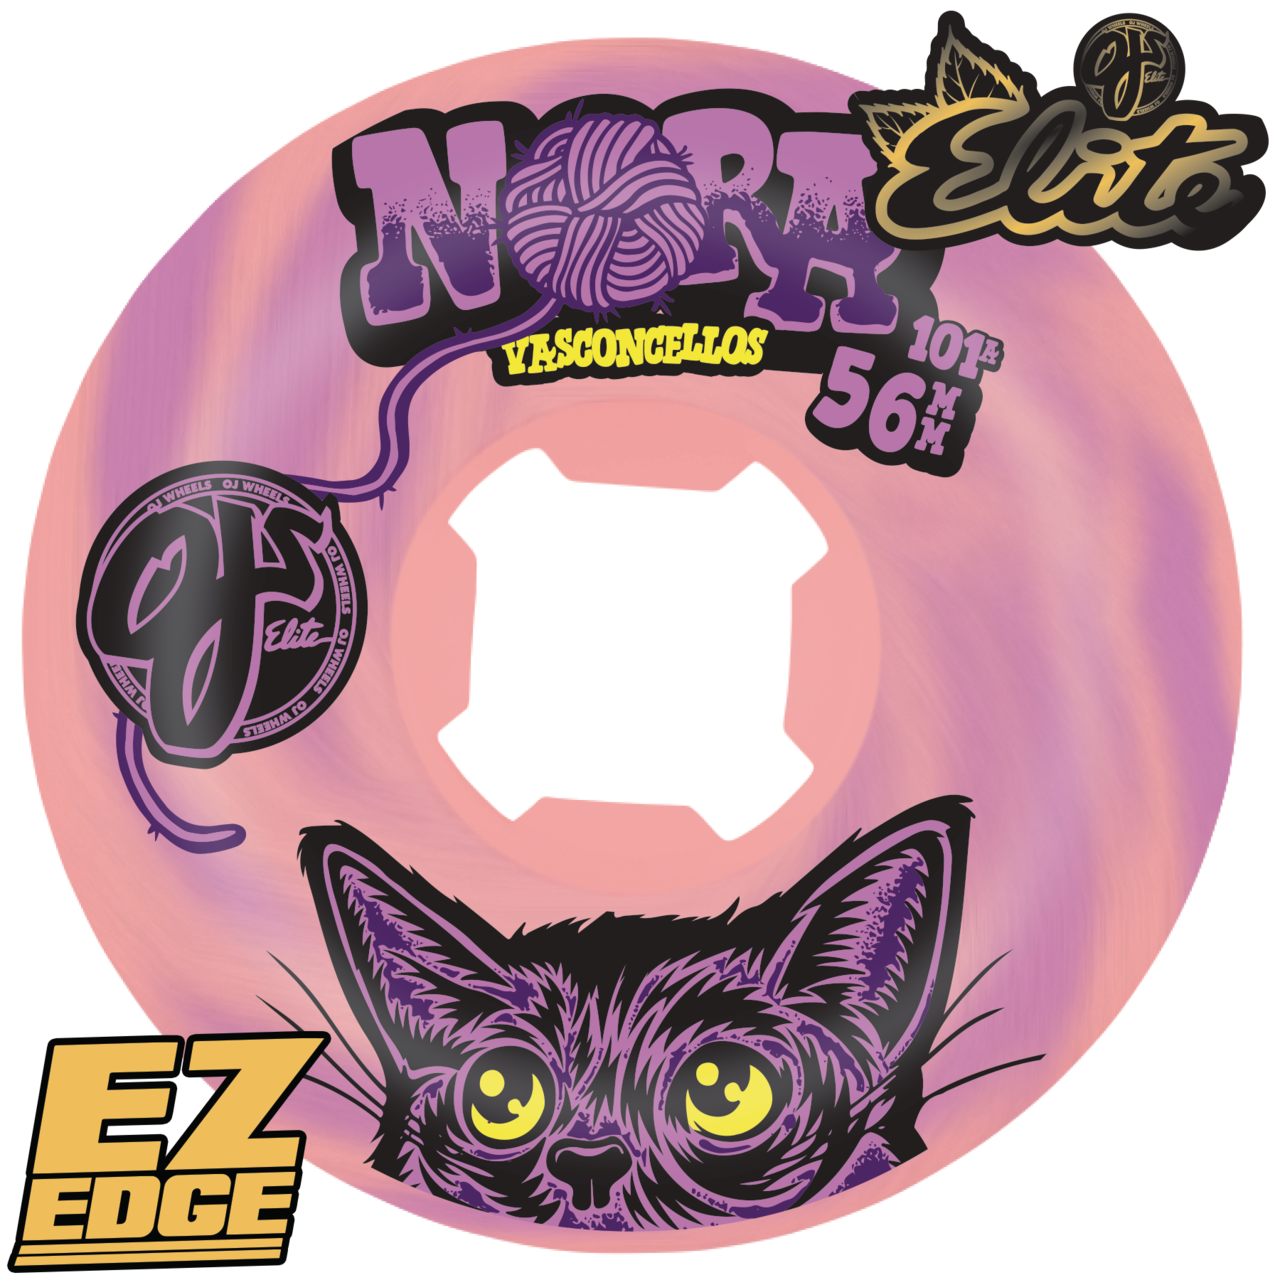 OJ 56mm Elite Nora Vasconcellos pink/purple ez edge 101a